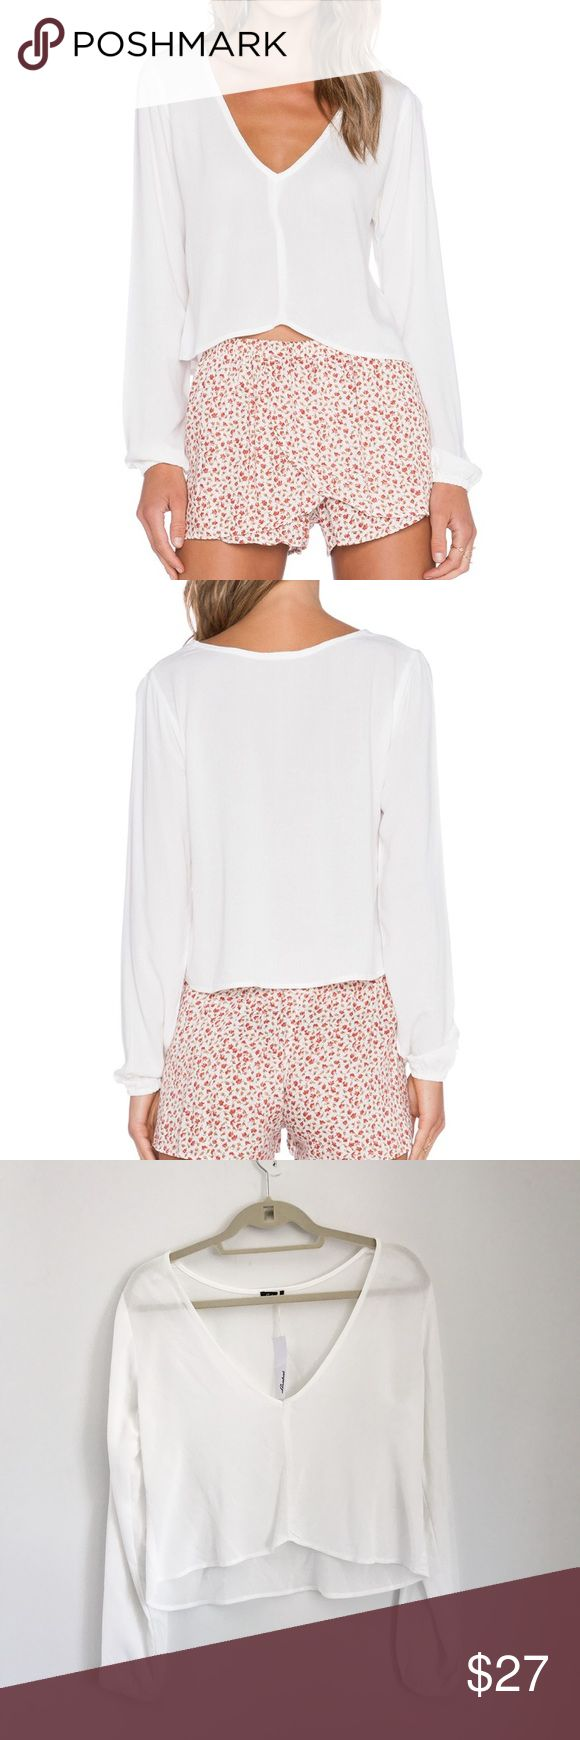 Lisakai White Long Sleeve Top size M NWT Lisakai white long sleeve crop top with an asymmetrical gem (high-low). Super cute with pretty Boho scrunched sleeves at the cuff. Never worn. Purchased for $75 on revolve.com. Lisakai Tops Blouses